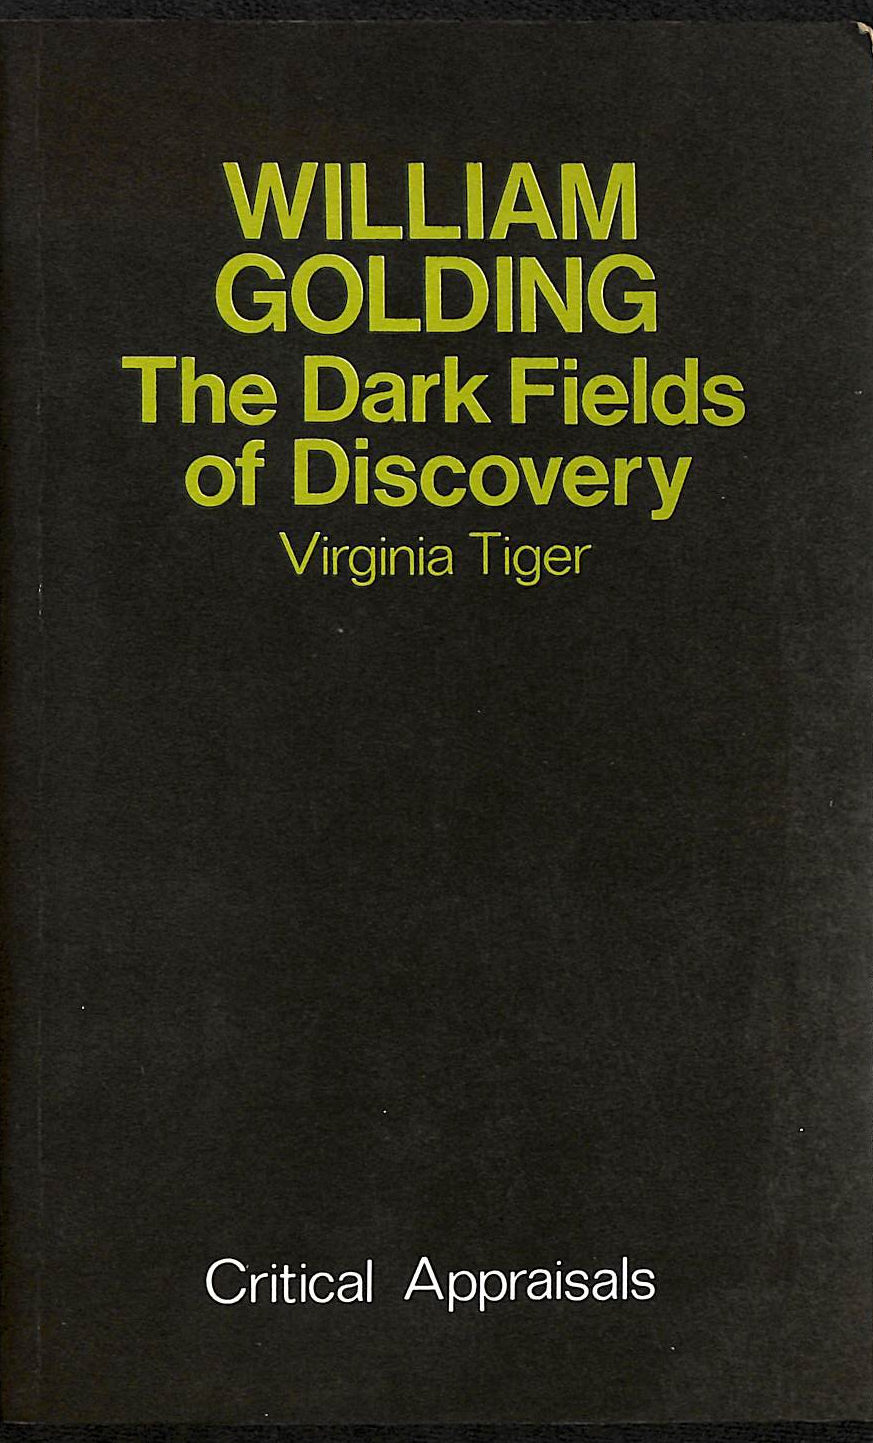 Image for William Golding: The Dark Fields Of Discovery